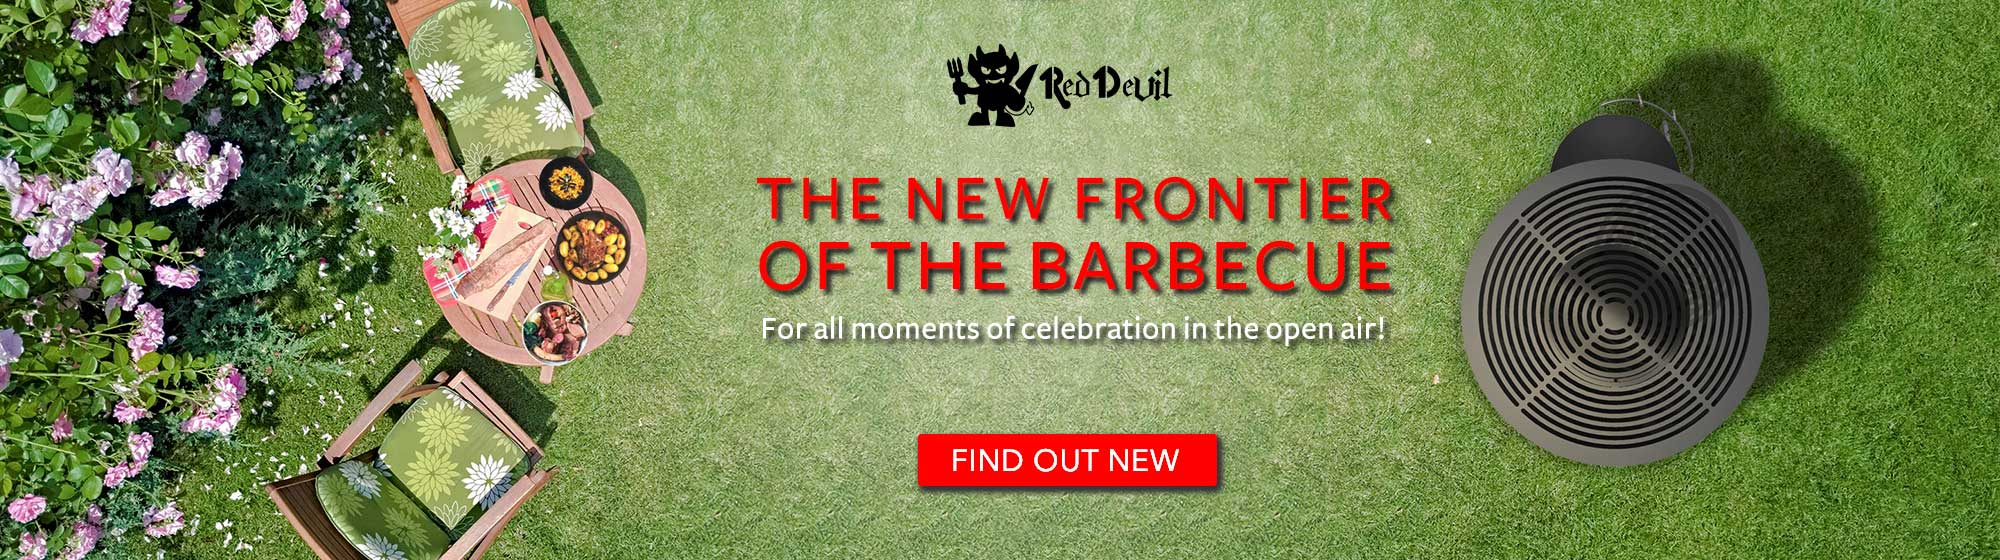 The new frontier of barbecue!